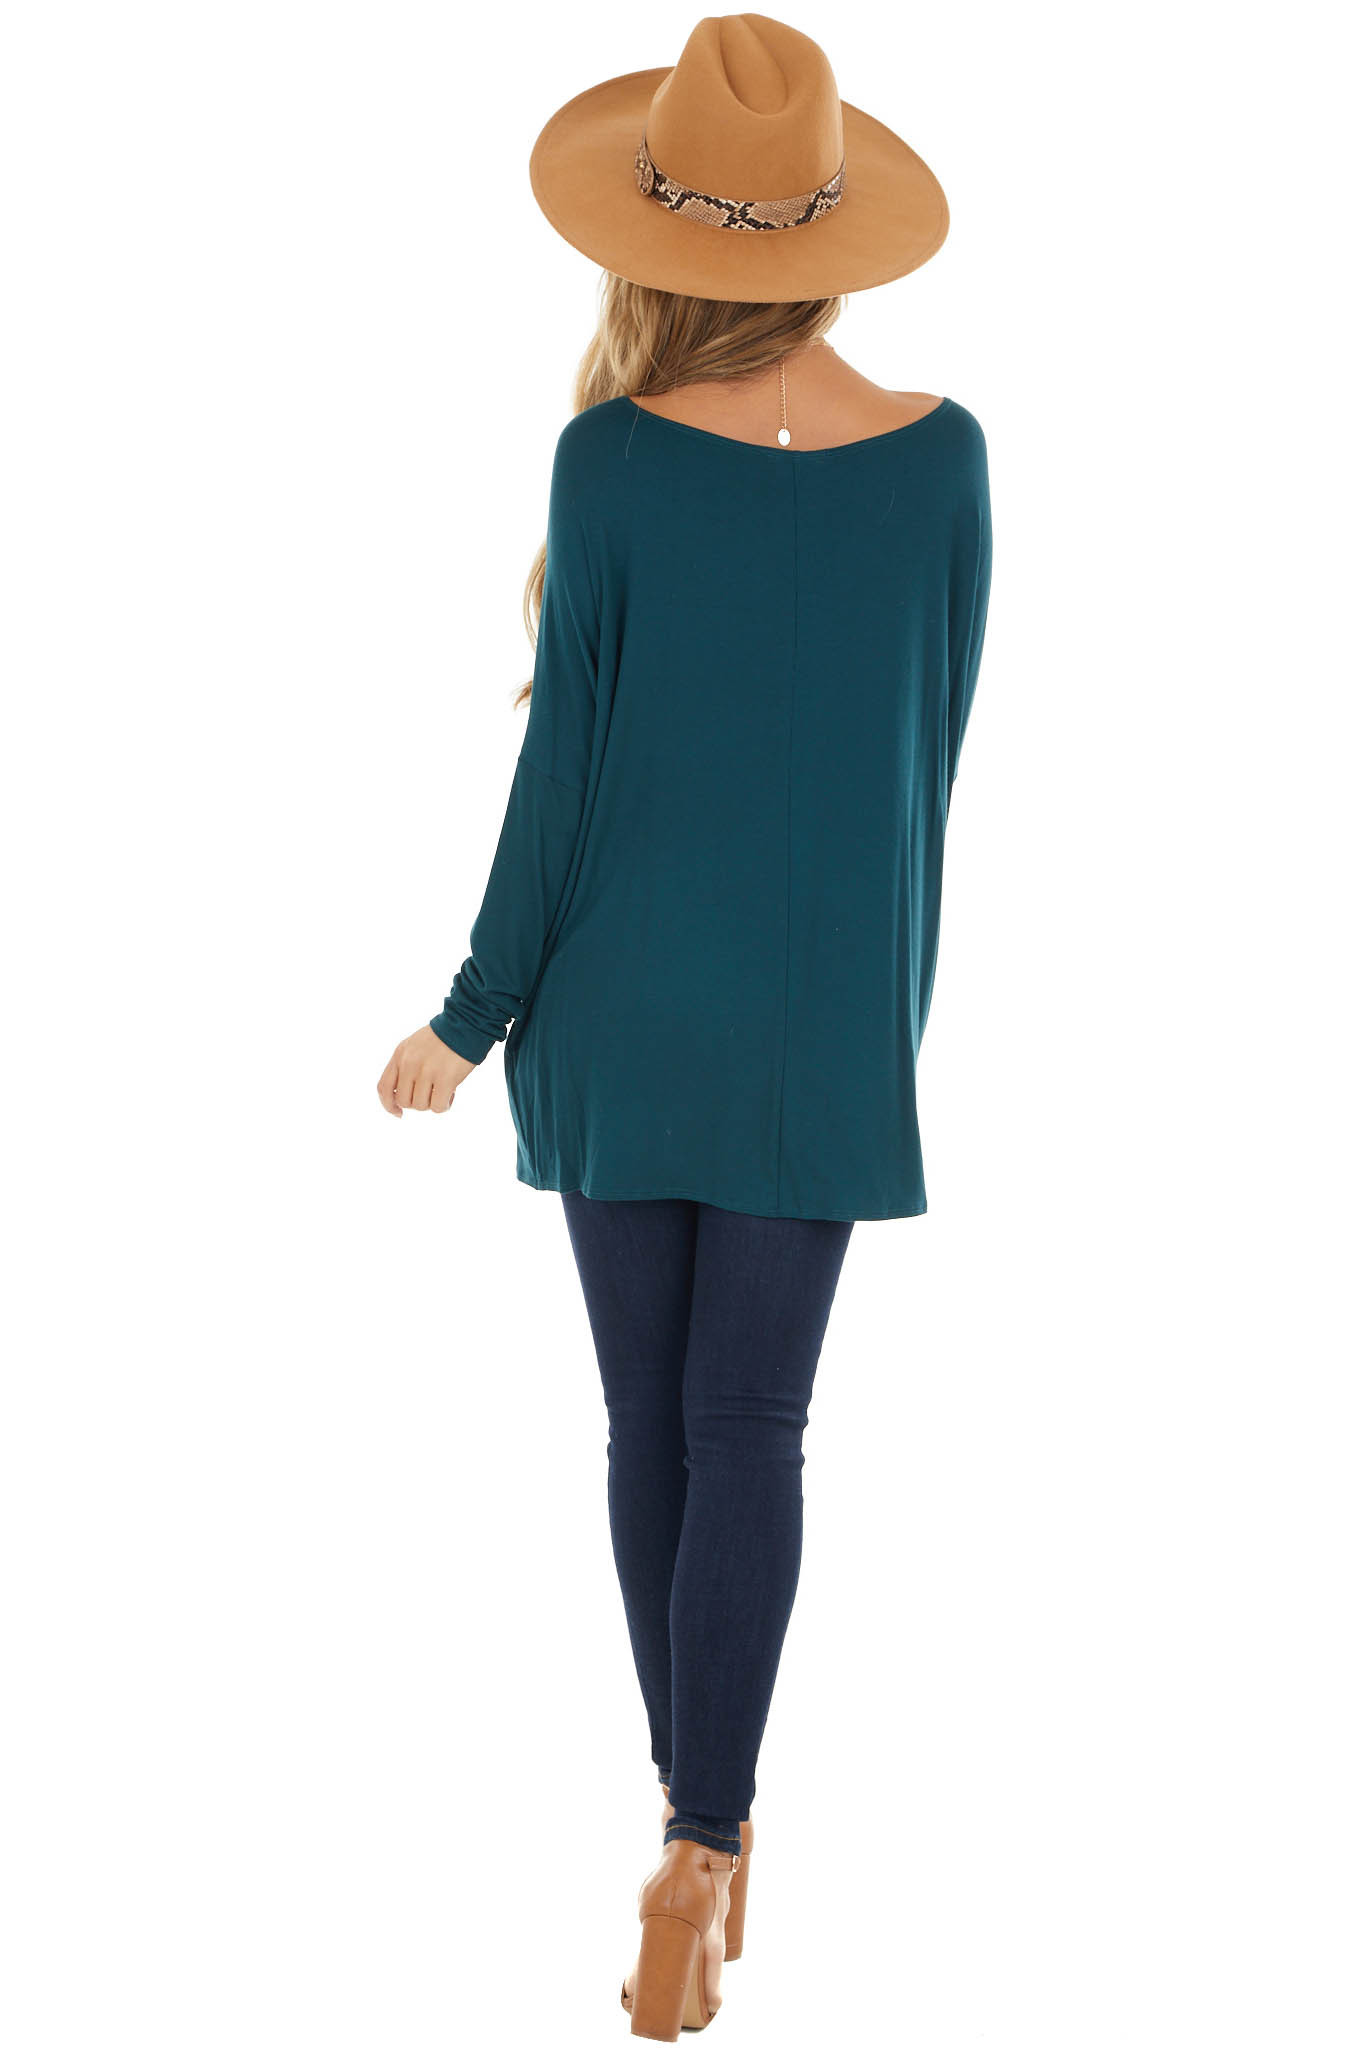 Pine Long Sleeve Knit Top with Off Shoulder Neckline